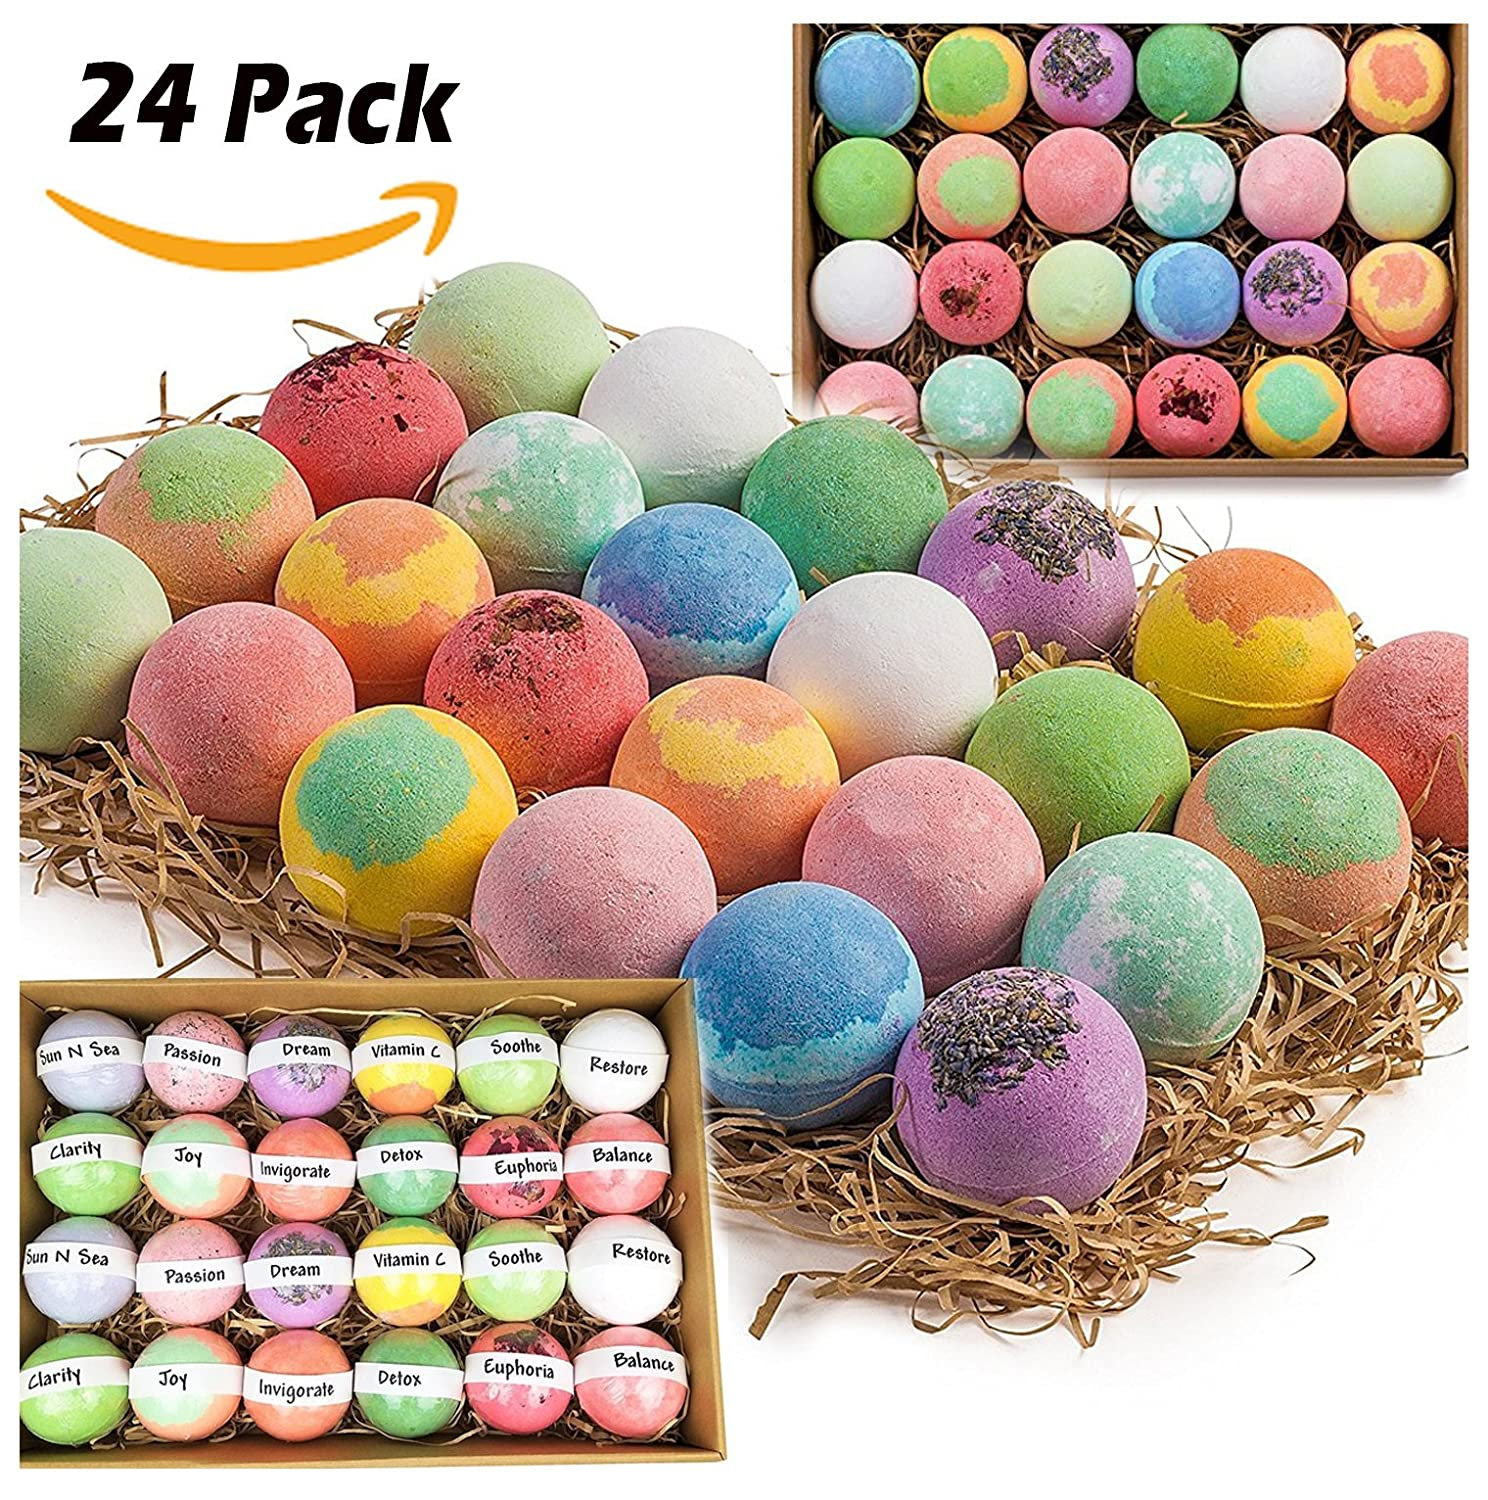 Gift Set of 36 Nurture Me Organic Bath Bombs, Large Bath Fizzies All Natural with Organic Shea & Cocoa Butter Nurture Me Organics